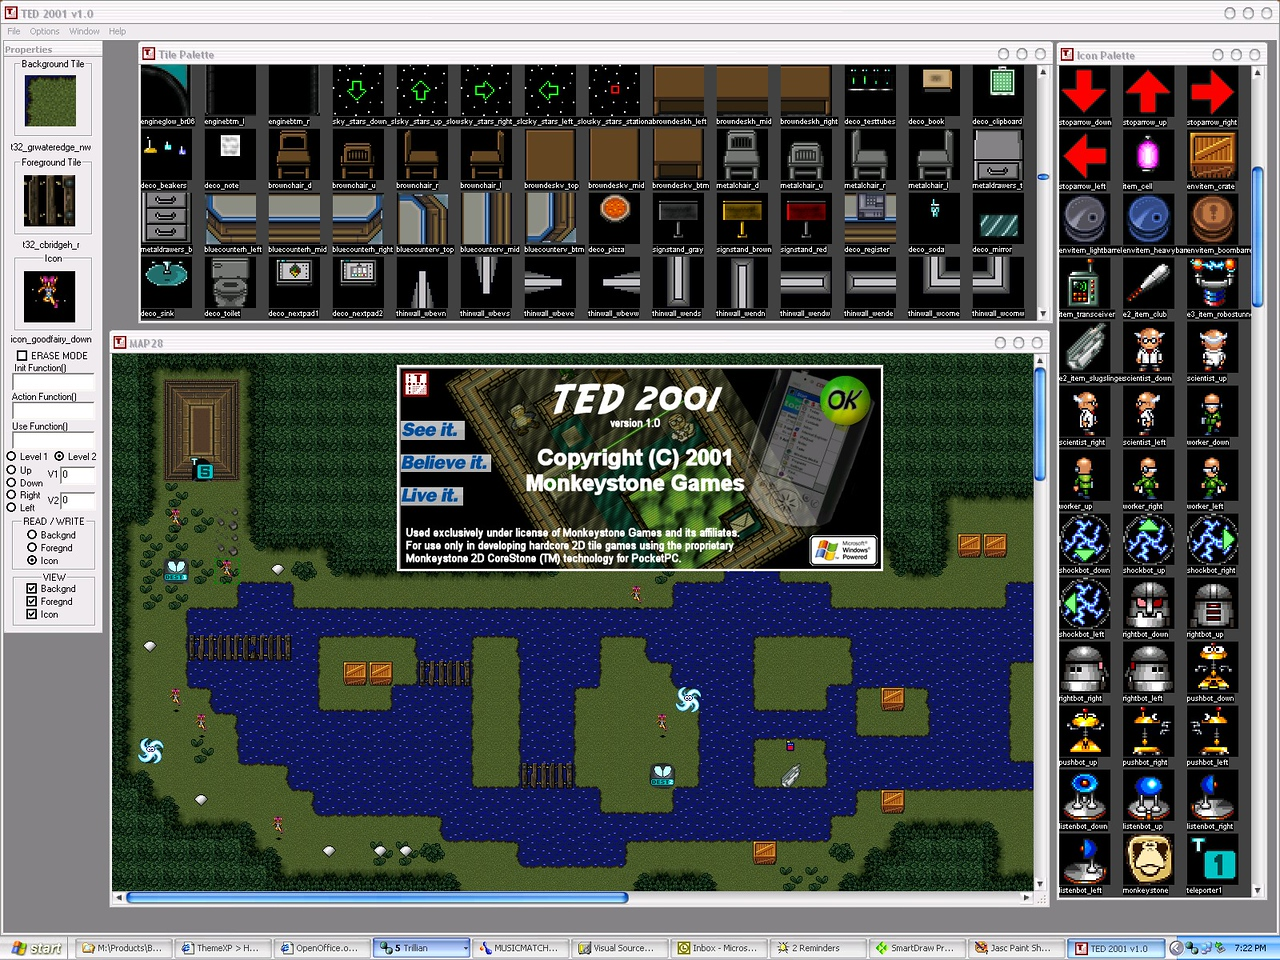 Here's a screenshot of the first Win32 program I wrote, TED 2001, the tilemap editor Tom used to create all of HDB's maps.  I wrote some crazy shit in the About... dialog and you'll see an old version of a room that Tom made using his own graphics.